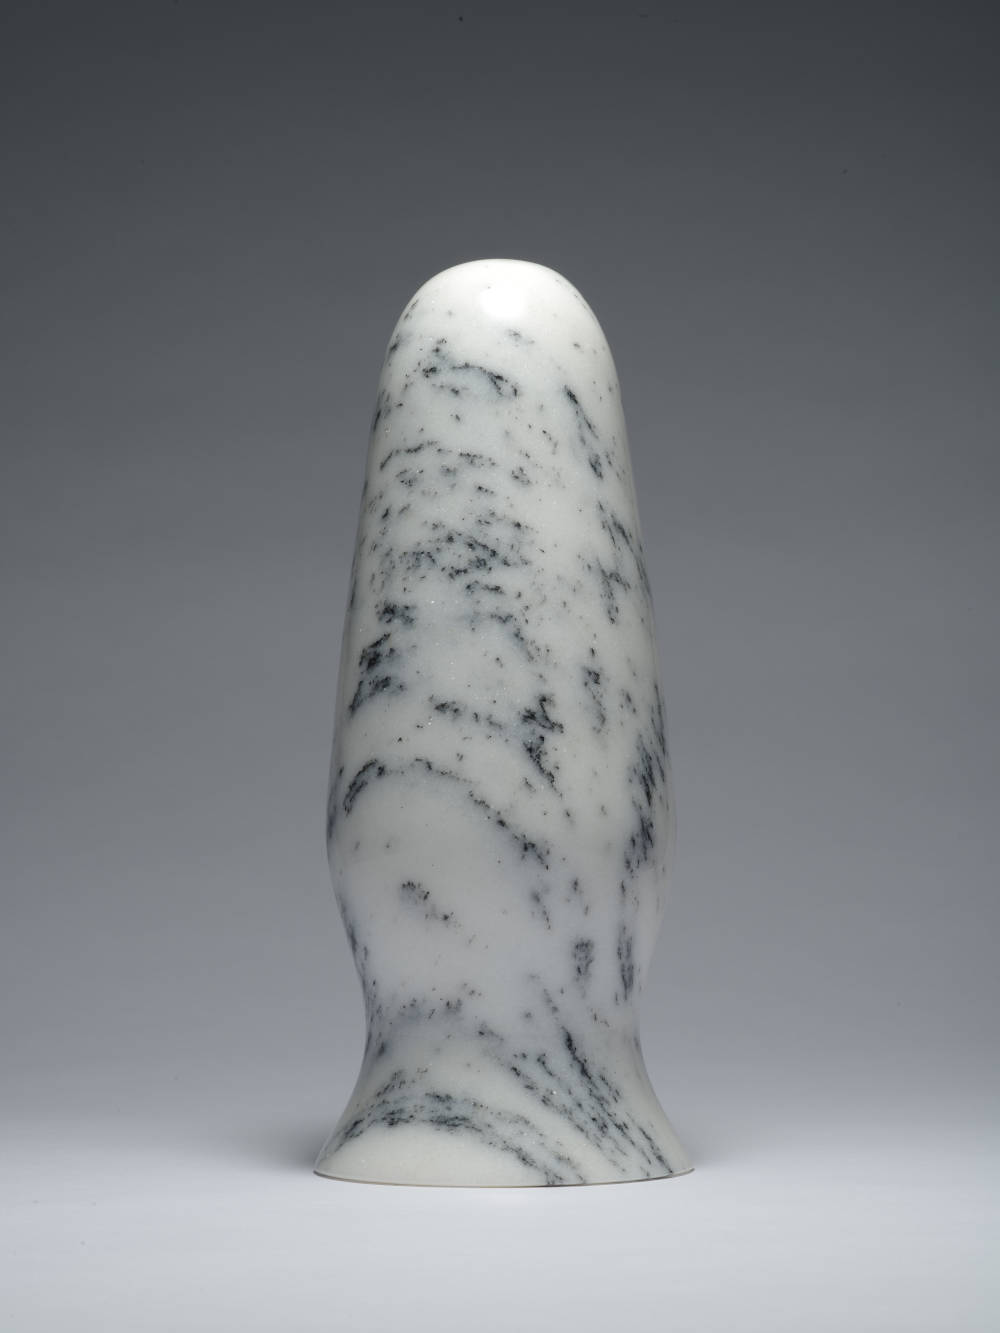 Zhao Zhao, Control 8, 2019. Natural marble 11.81 x 5.12 x 5.12 in (30 x 13 x 13 cm) Courtesy of the artist and Roberts Projects, Los Angeles, California